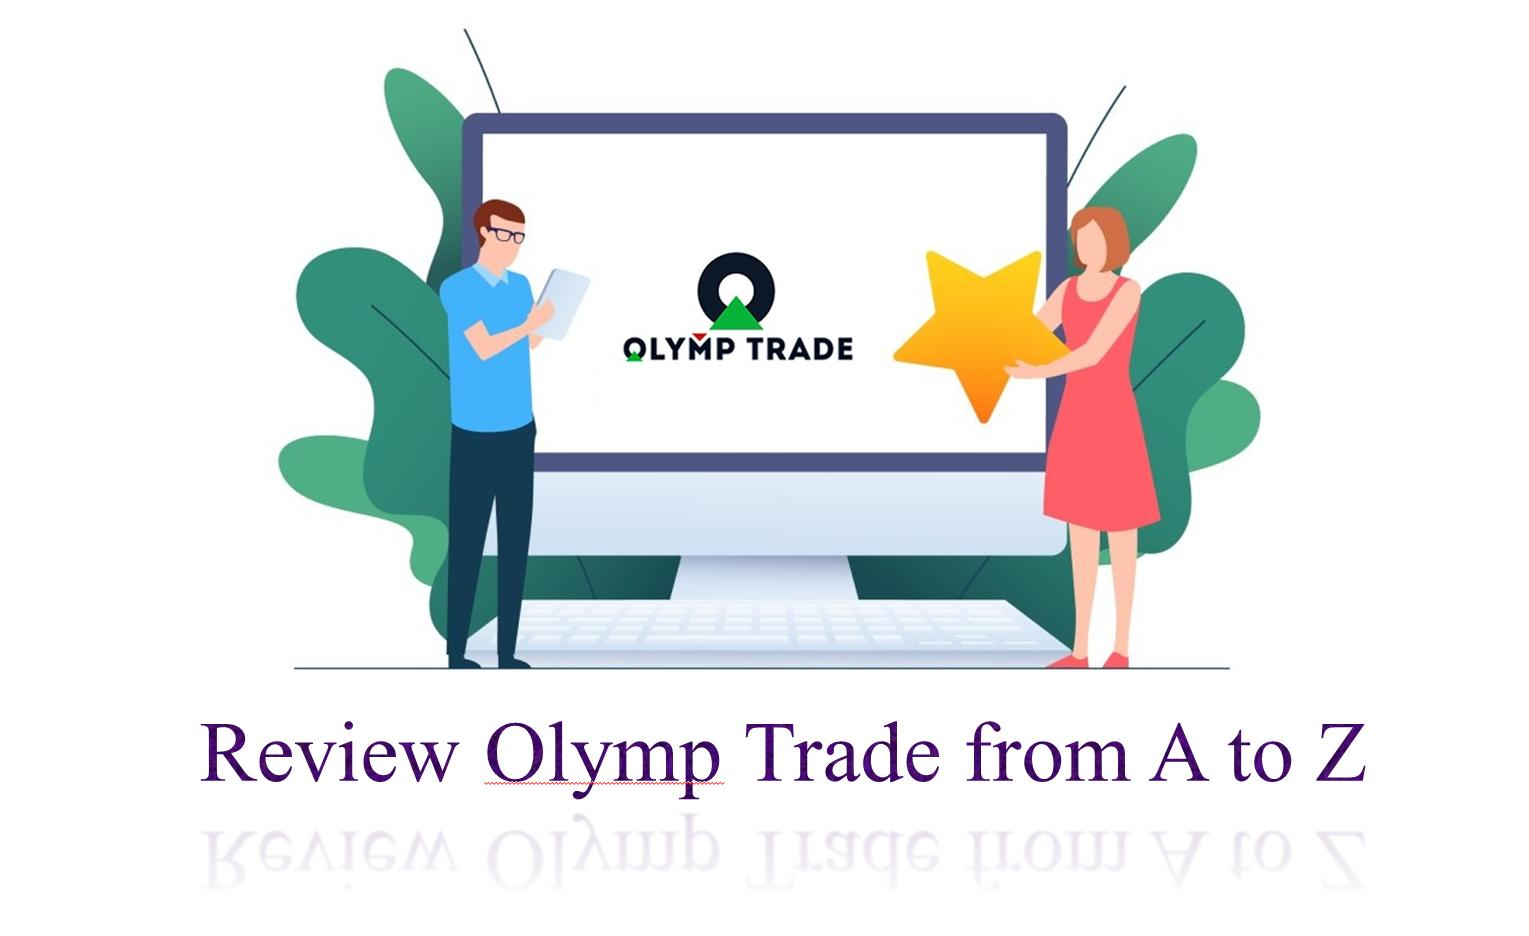 Detailed review on the Olymp Trade trading platform